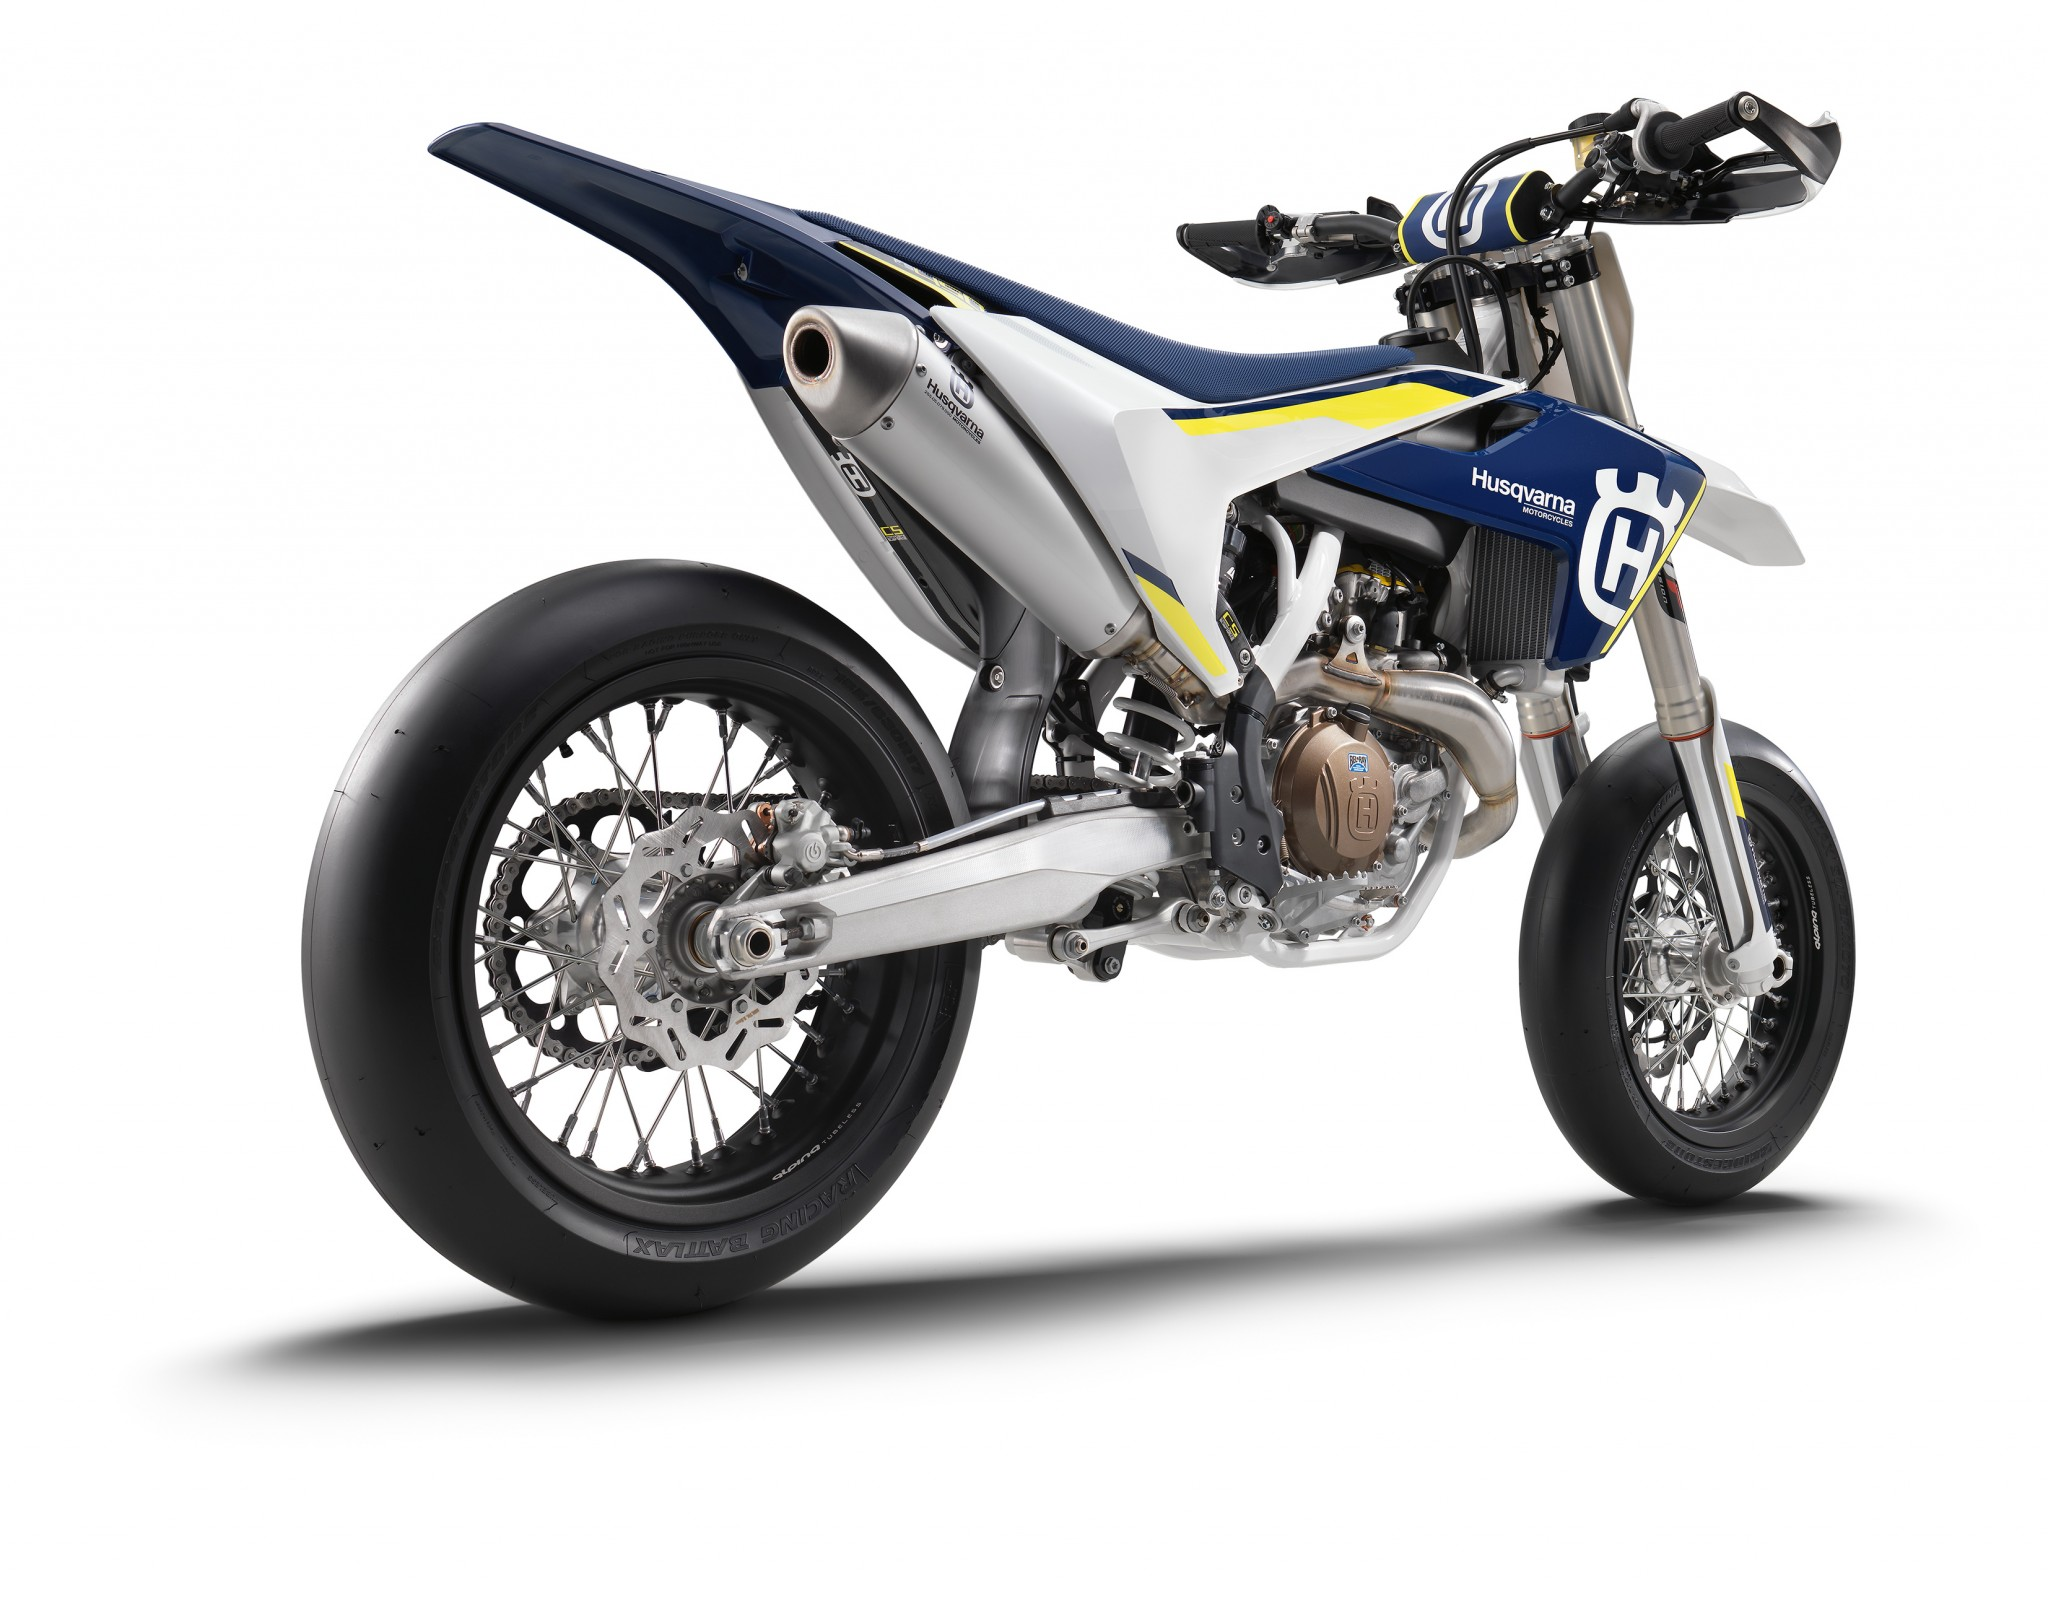 2016 husqvarna fs 450 new generation supermoto. Black Bedroom Furniture Sets. Home Design Ideas